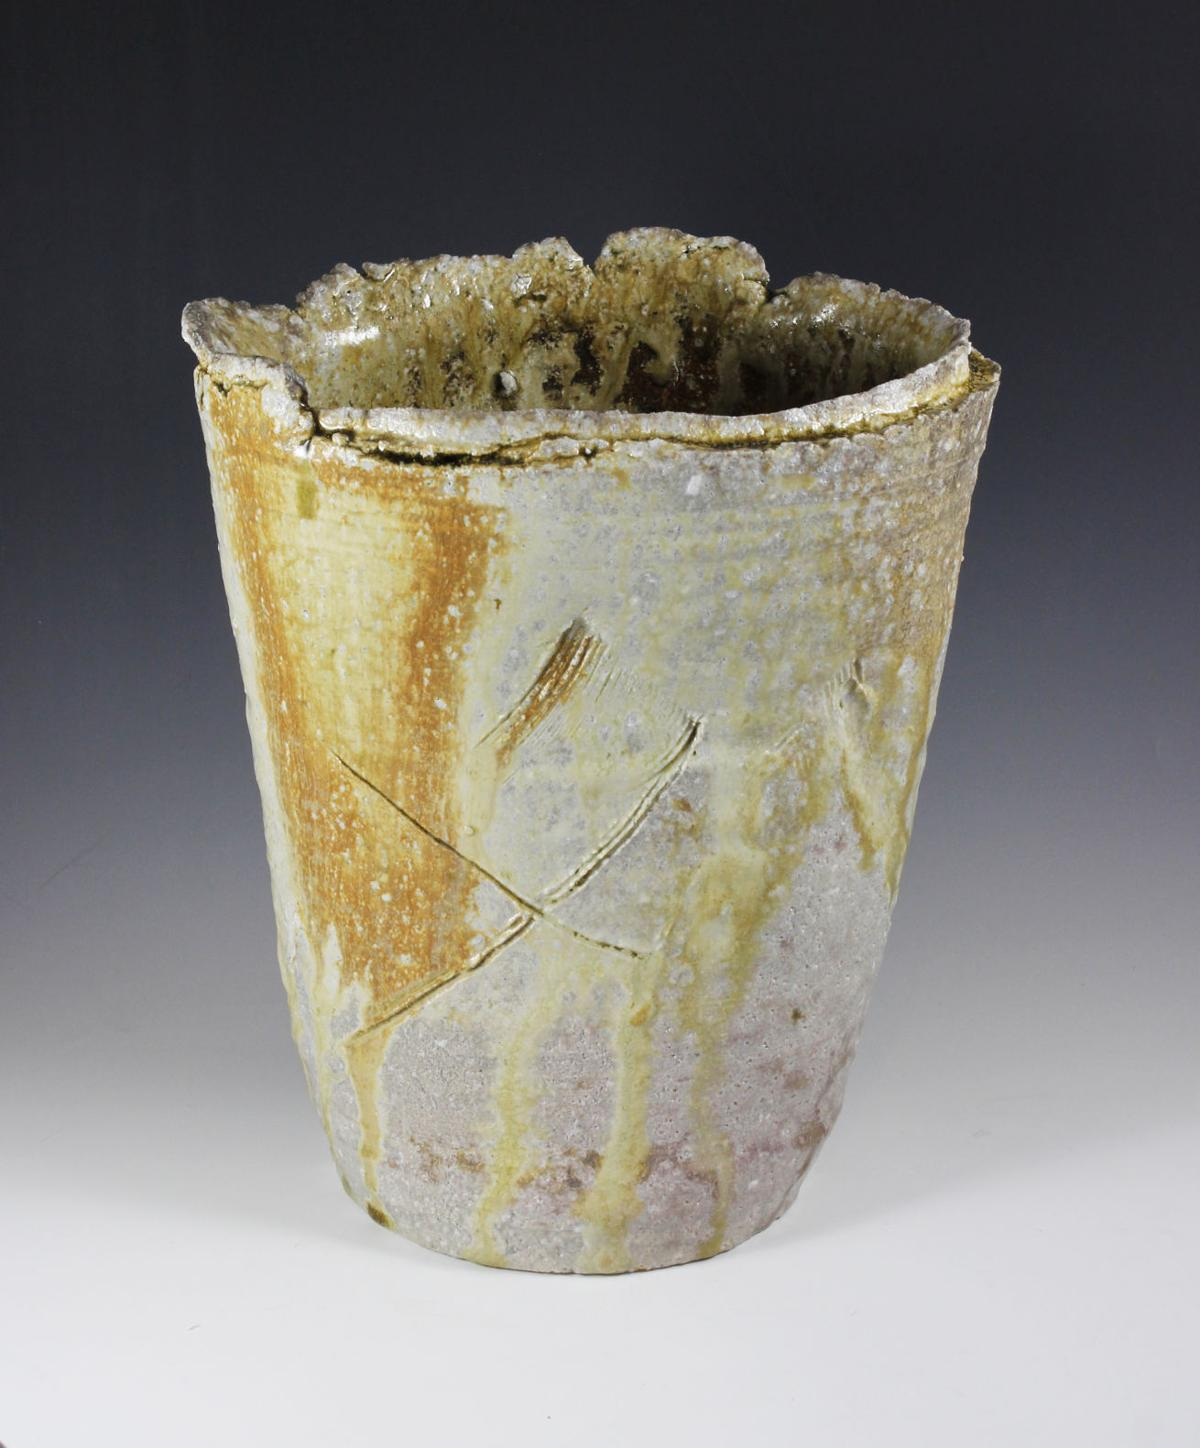 Hunterdon Art Museum to host Peters Valley School of Craft exhibition